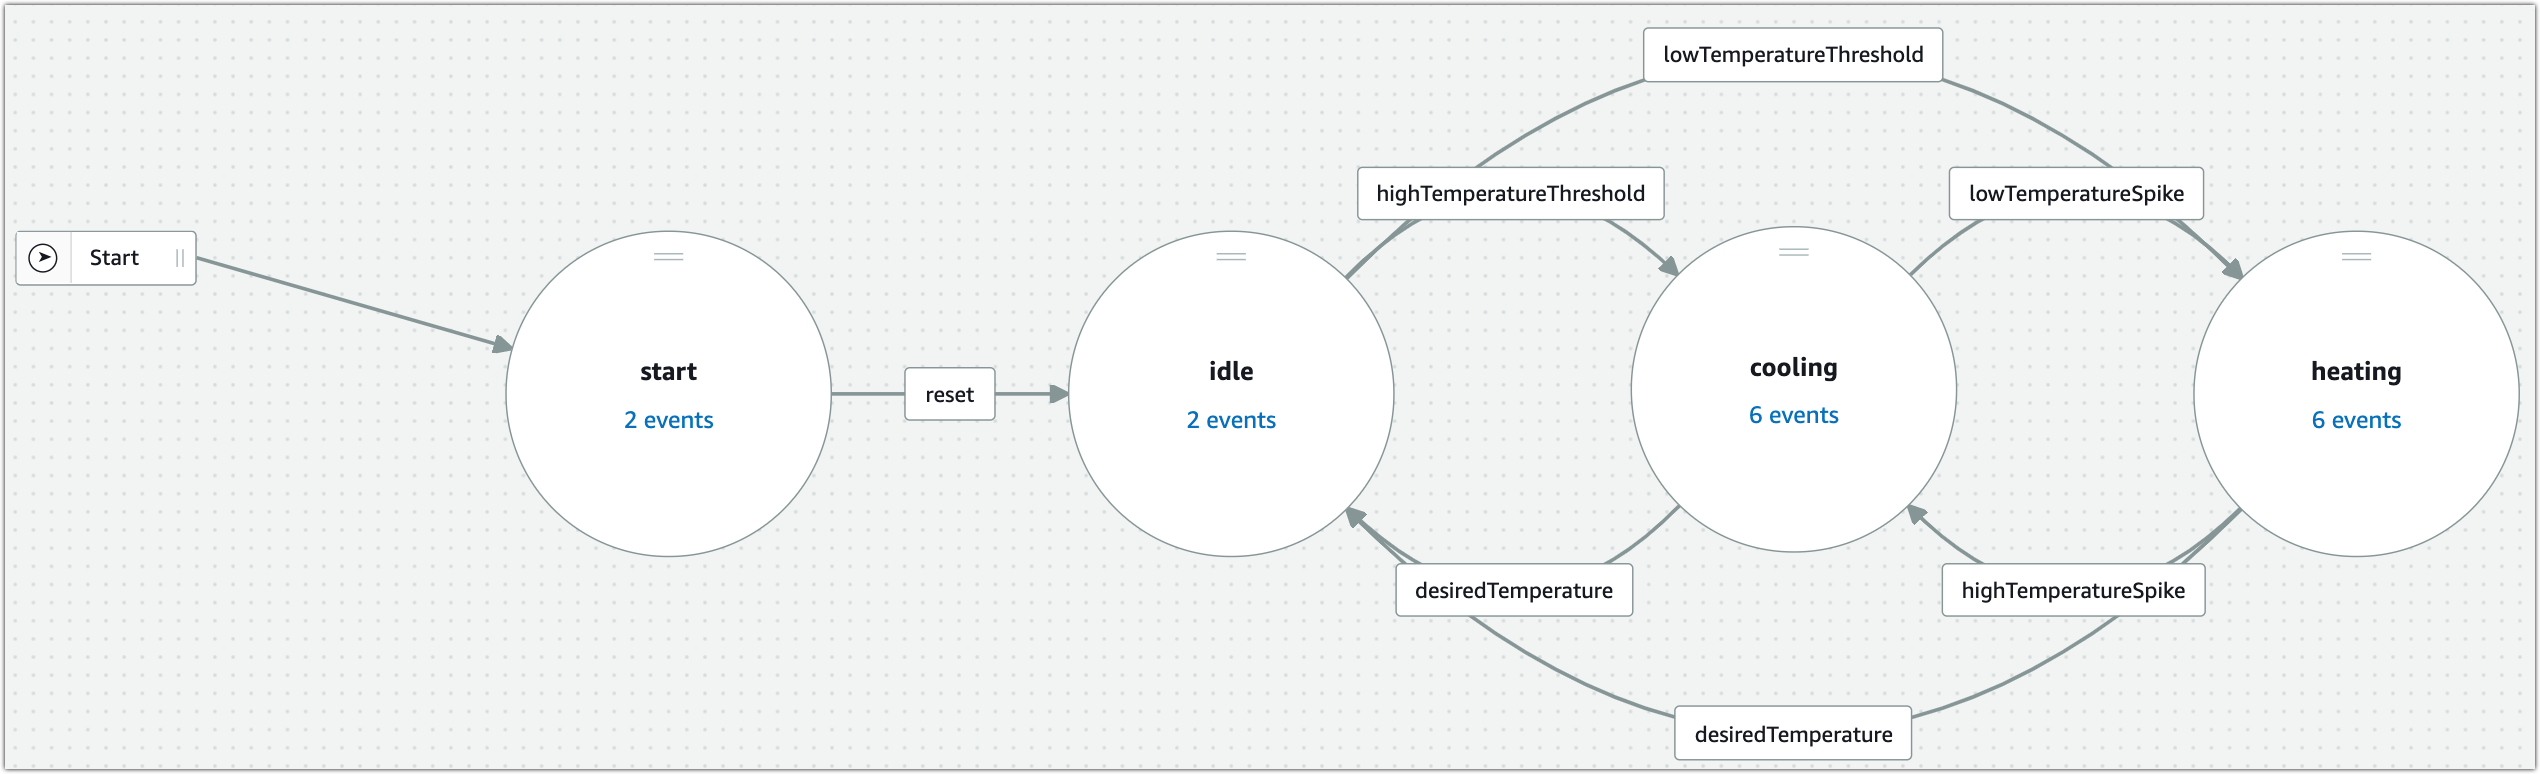 Diagram of HVAC detector model in AWS IoT Events console